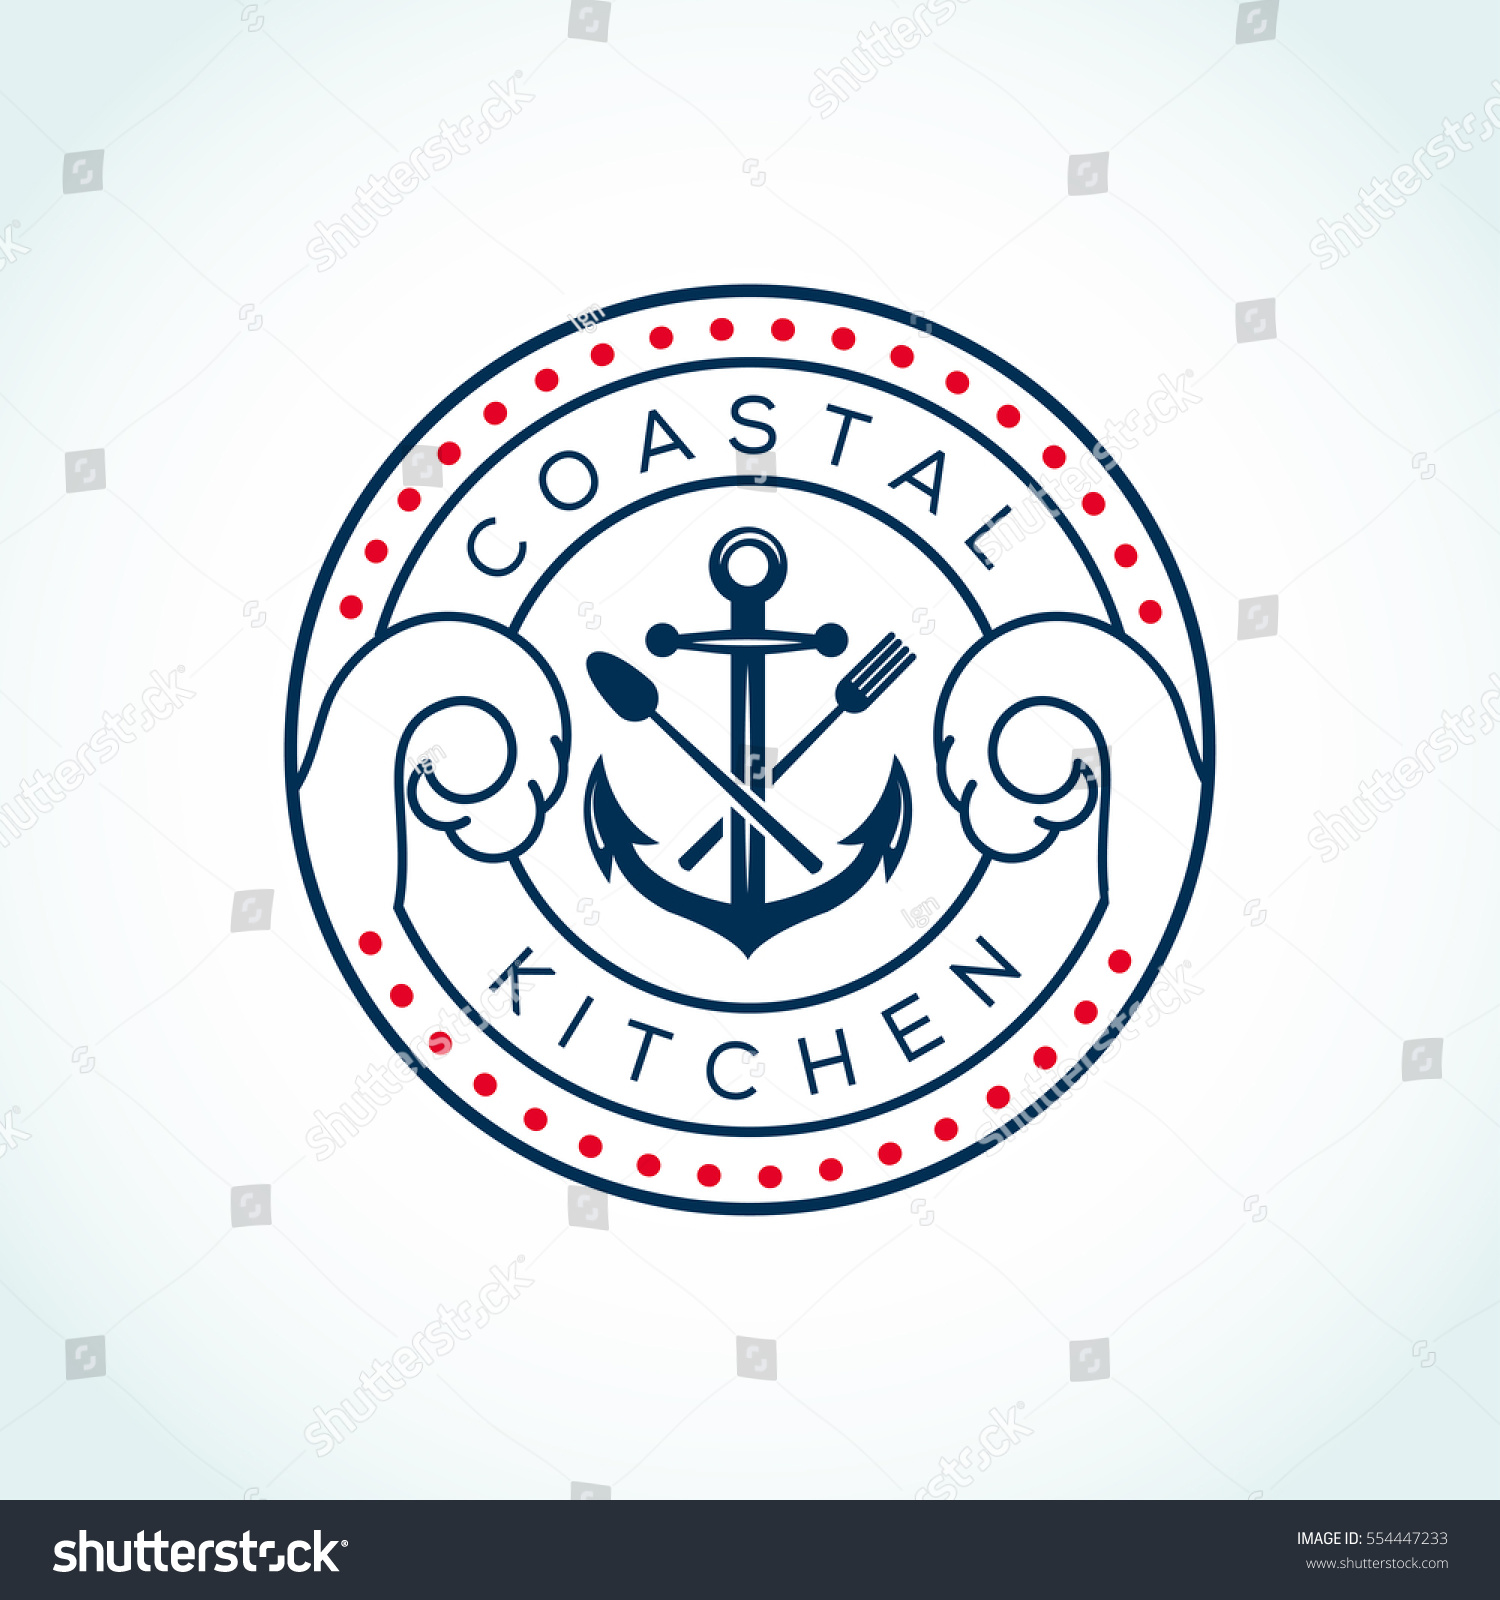 Vector Sea Food Label With Fork And Knife: Anchor Fork Knife Vector Logo Design Stock Vector